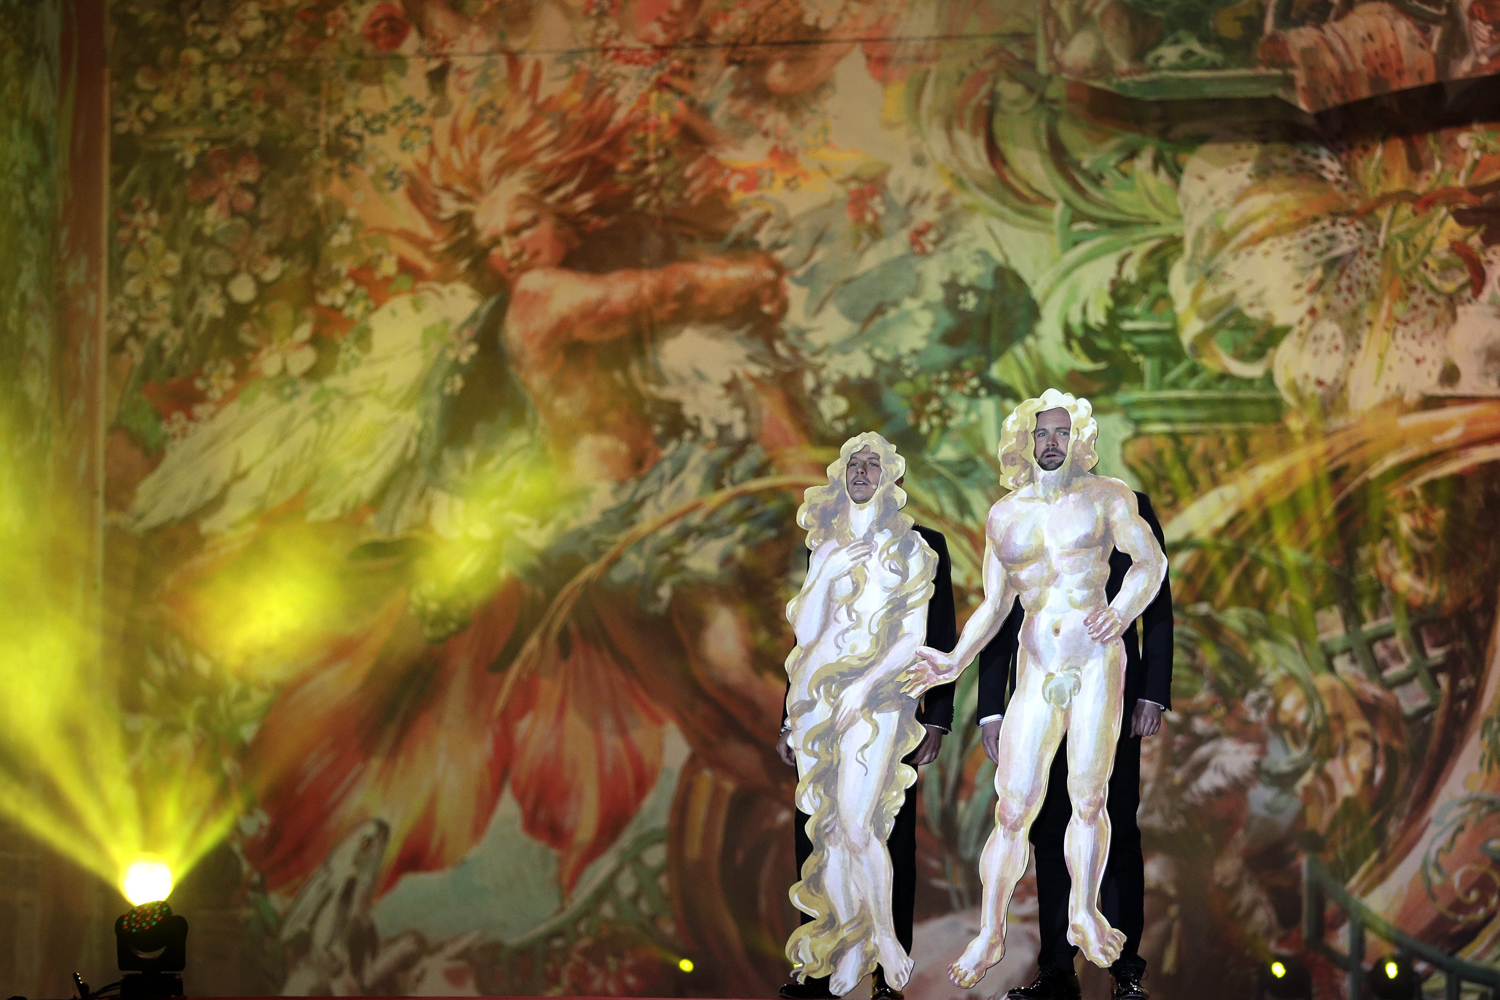 May 31, 2014. Hosts Thomas Stipsits (R) and Manuel Rubey (L) as 'Adam and Eve' perform during the opening ceremony of the 'Life Ball 2014' at the City Hall Square in Vienna, Austria.